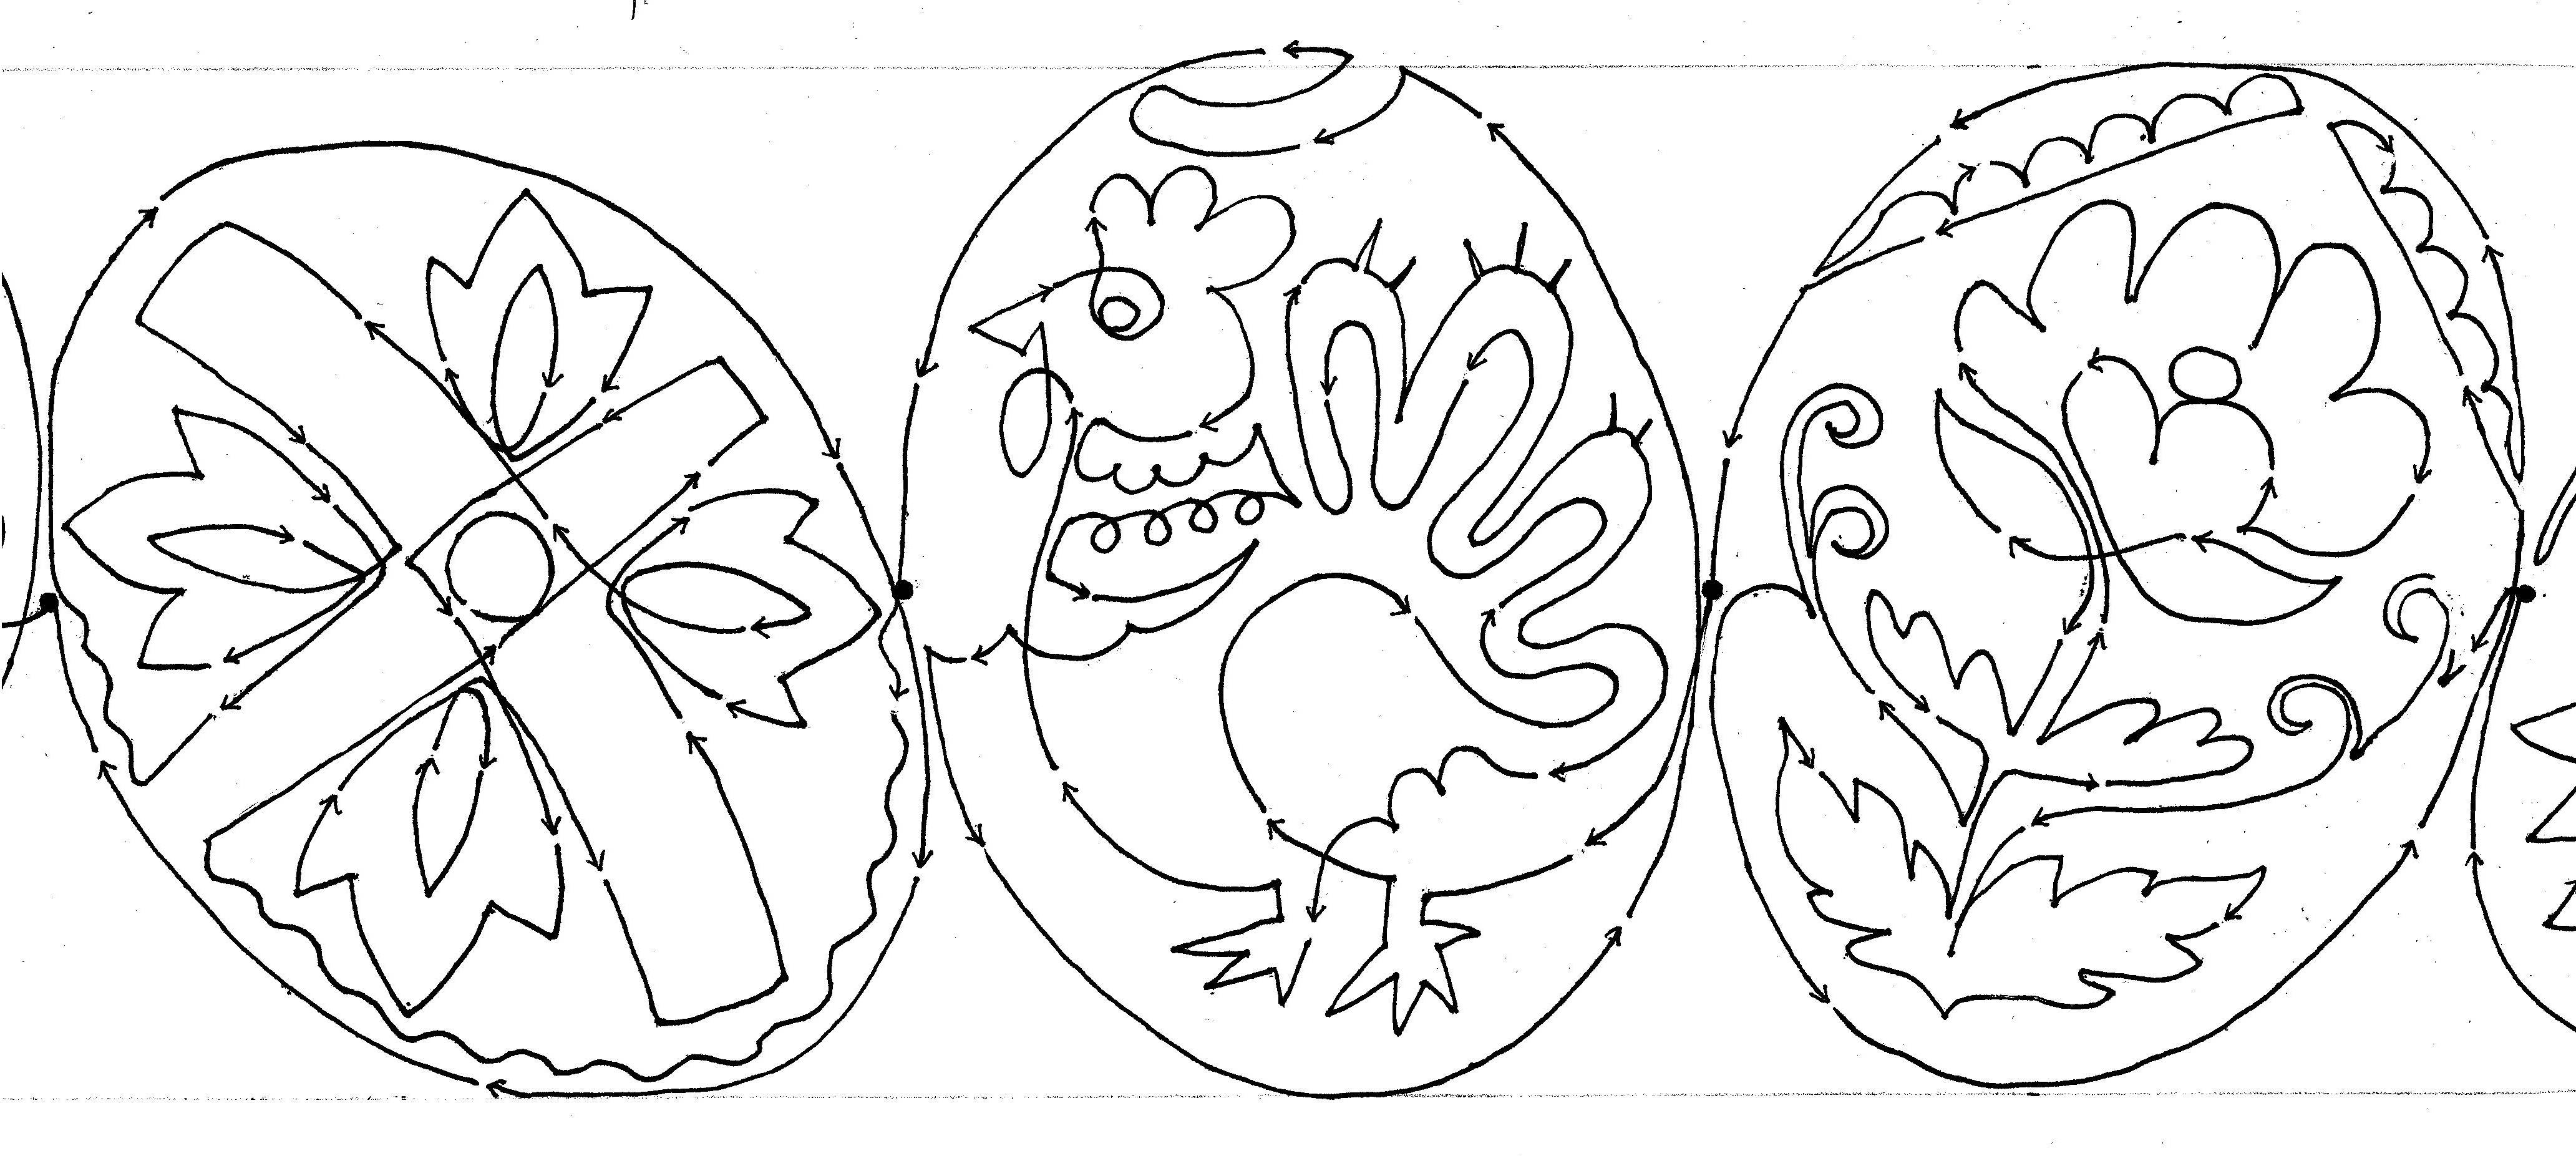 Free Ukrainian Egg Designs Coloring Pages Ukrainian Coloring Pages